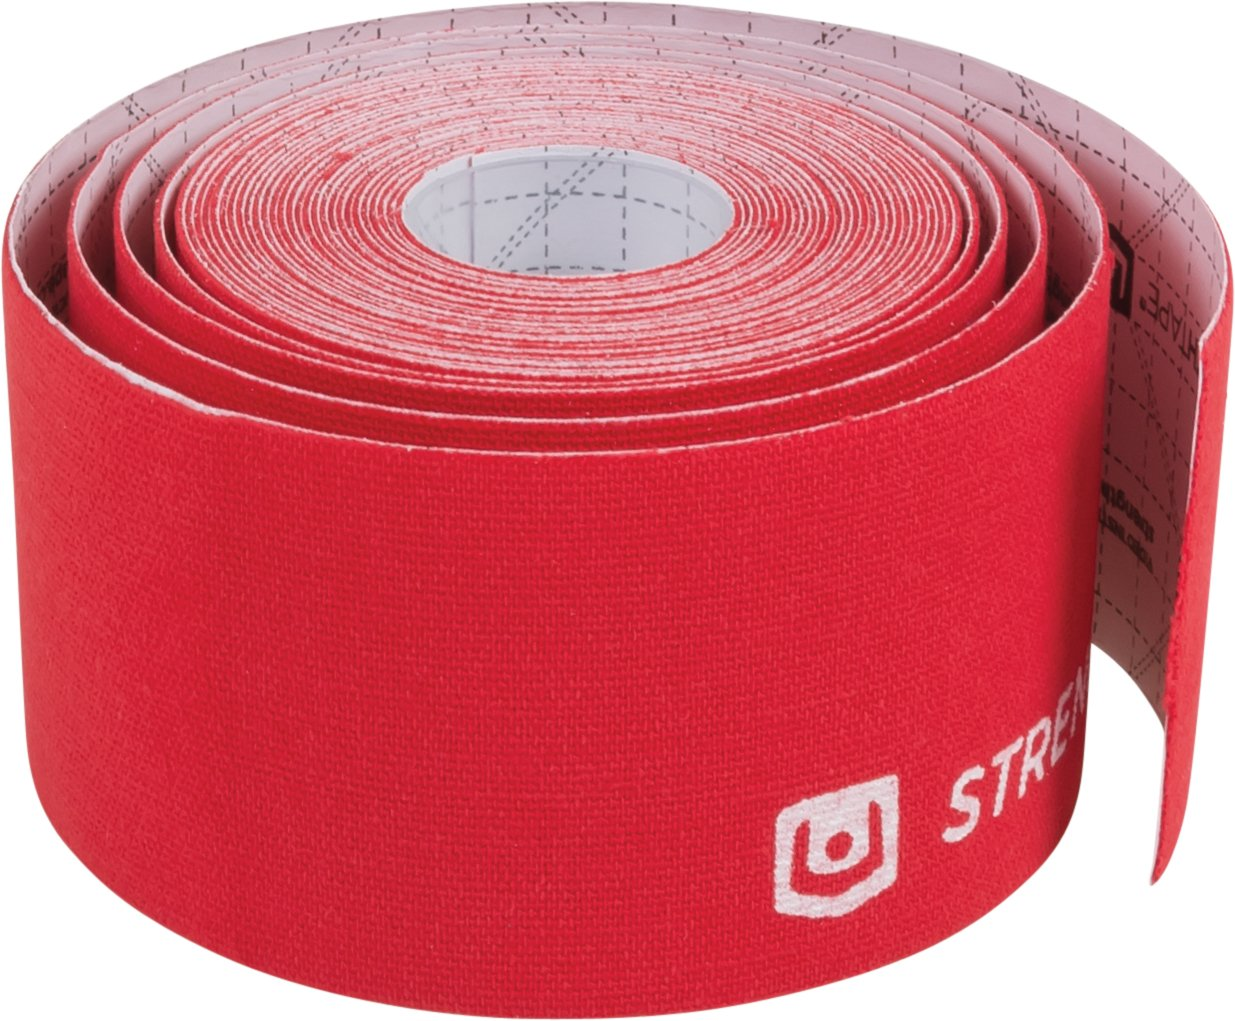 StrengthTape Kinesiology Tape, 5M Uncut K Tape Rolls, Premium Sports Tape Provides Support and Stability to The Target Area, Multiple Colors Available